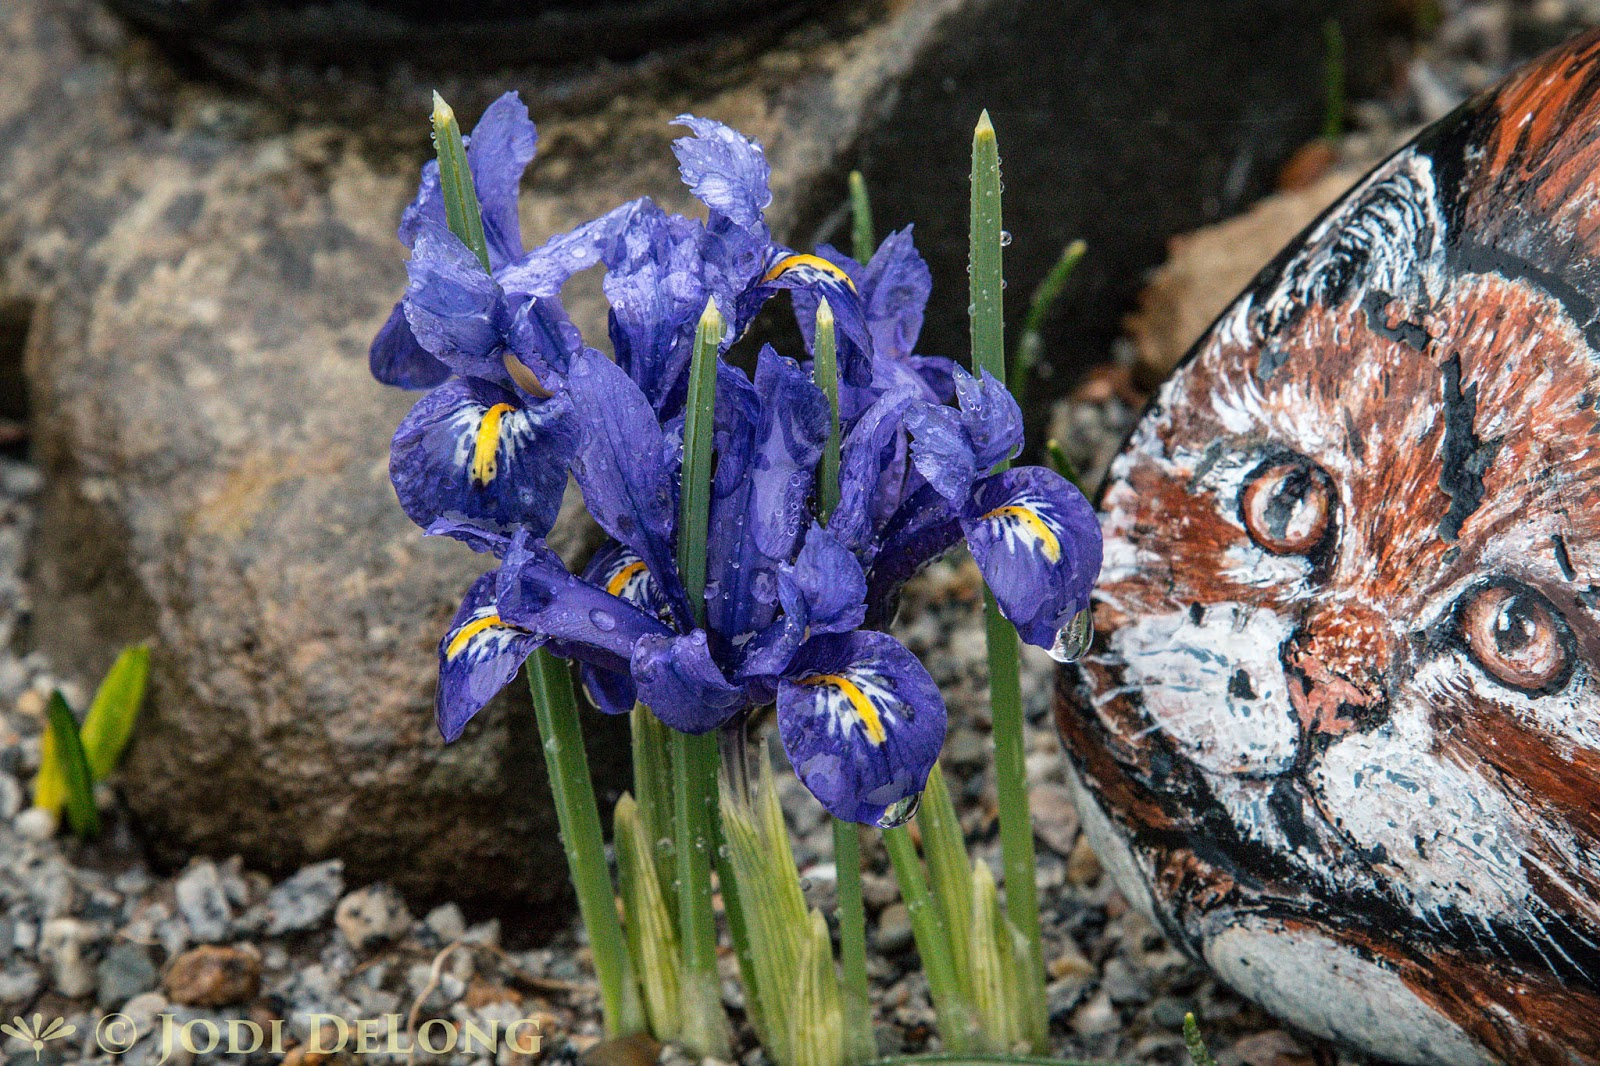 Bloomingwriter gardening in nova scotia april 2016 in alices rock garden a cluster of dwarf iris probably i reticulata are guarded by a stone cat as opposed to the real ones who live there izmirmasajfo Choice Image